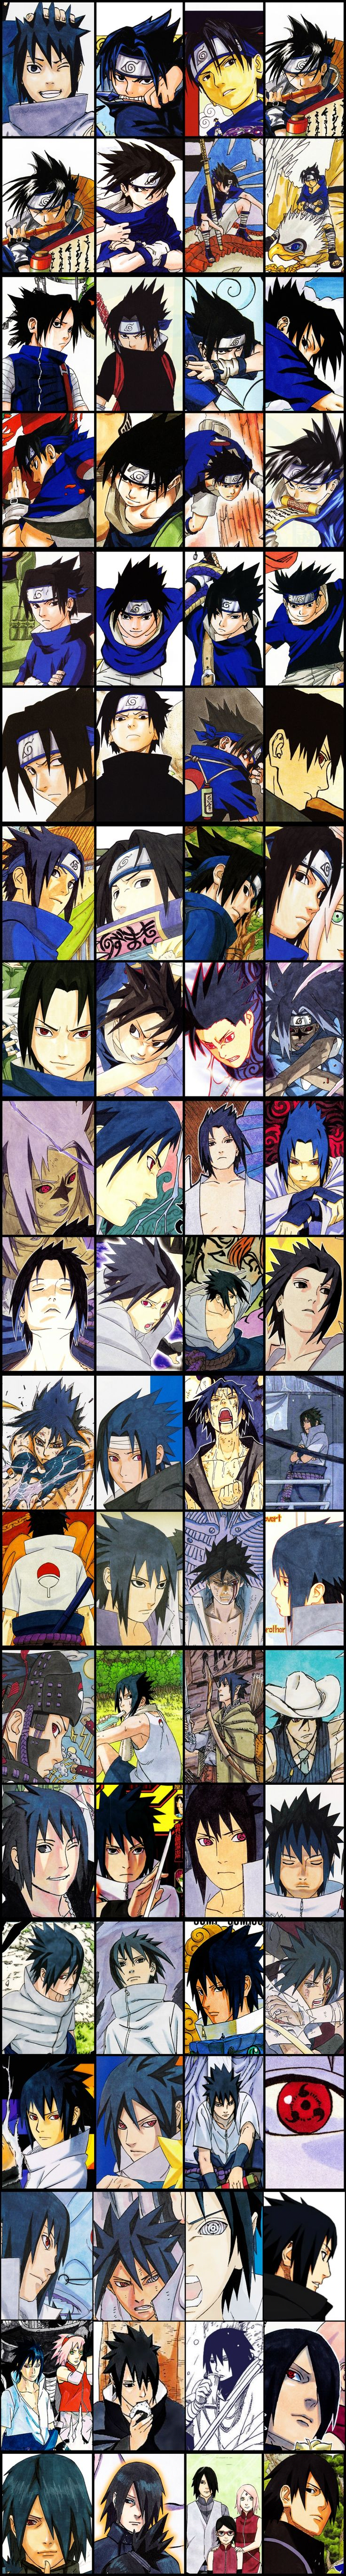 sasuke uchiha >>>everybody else.